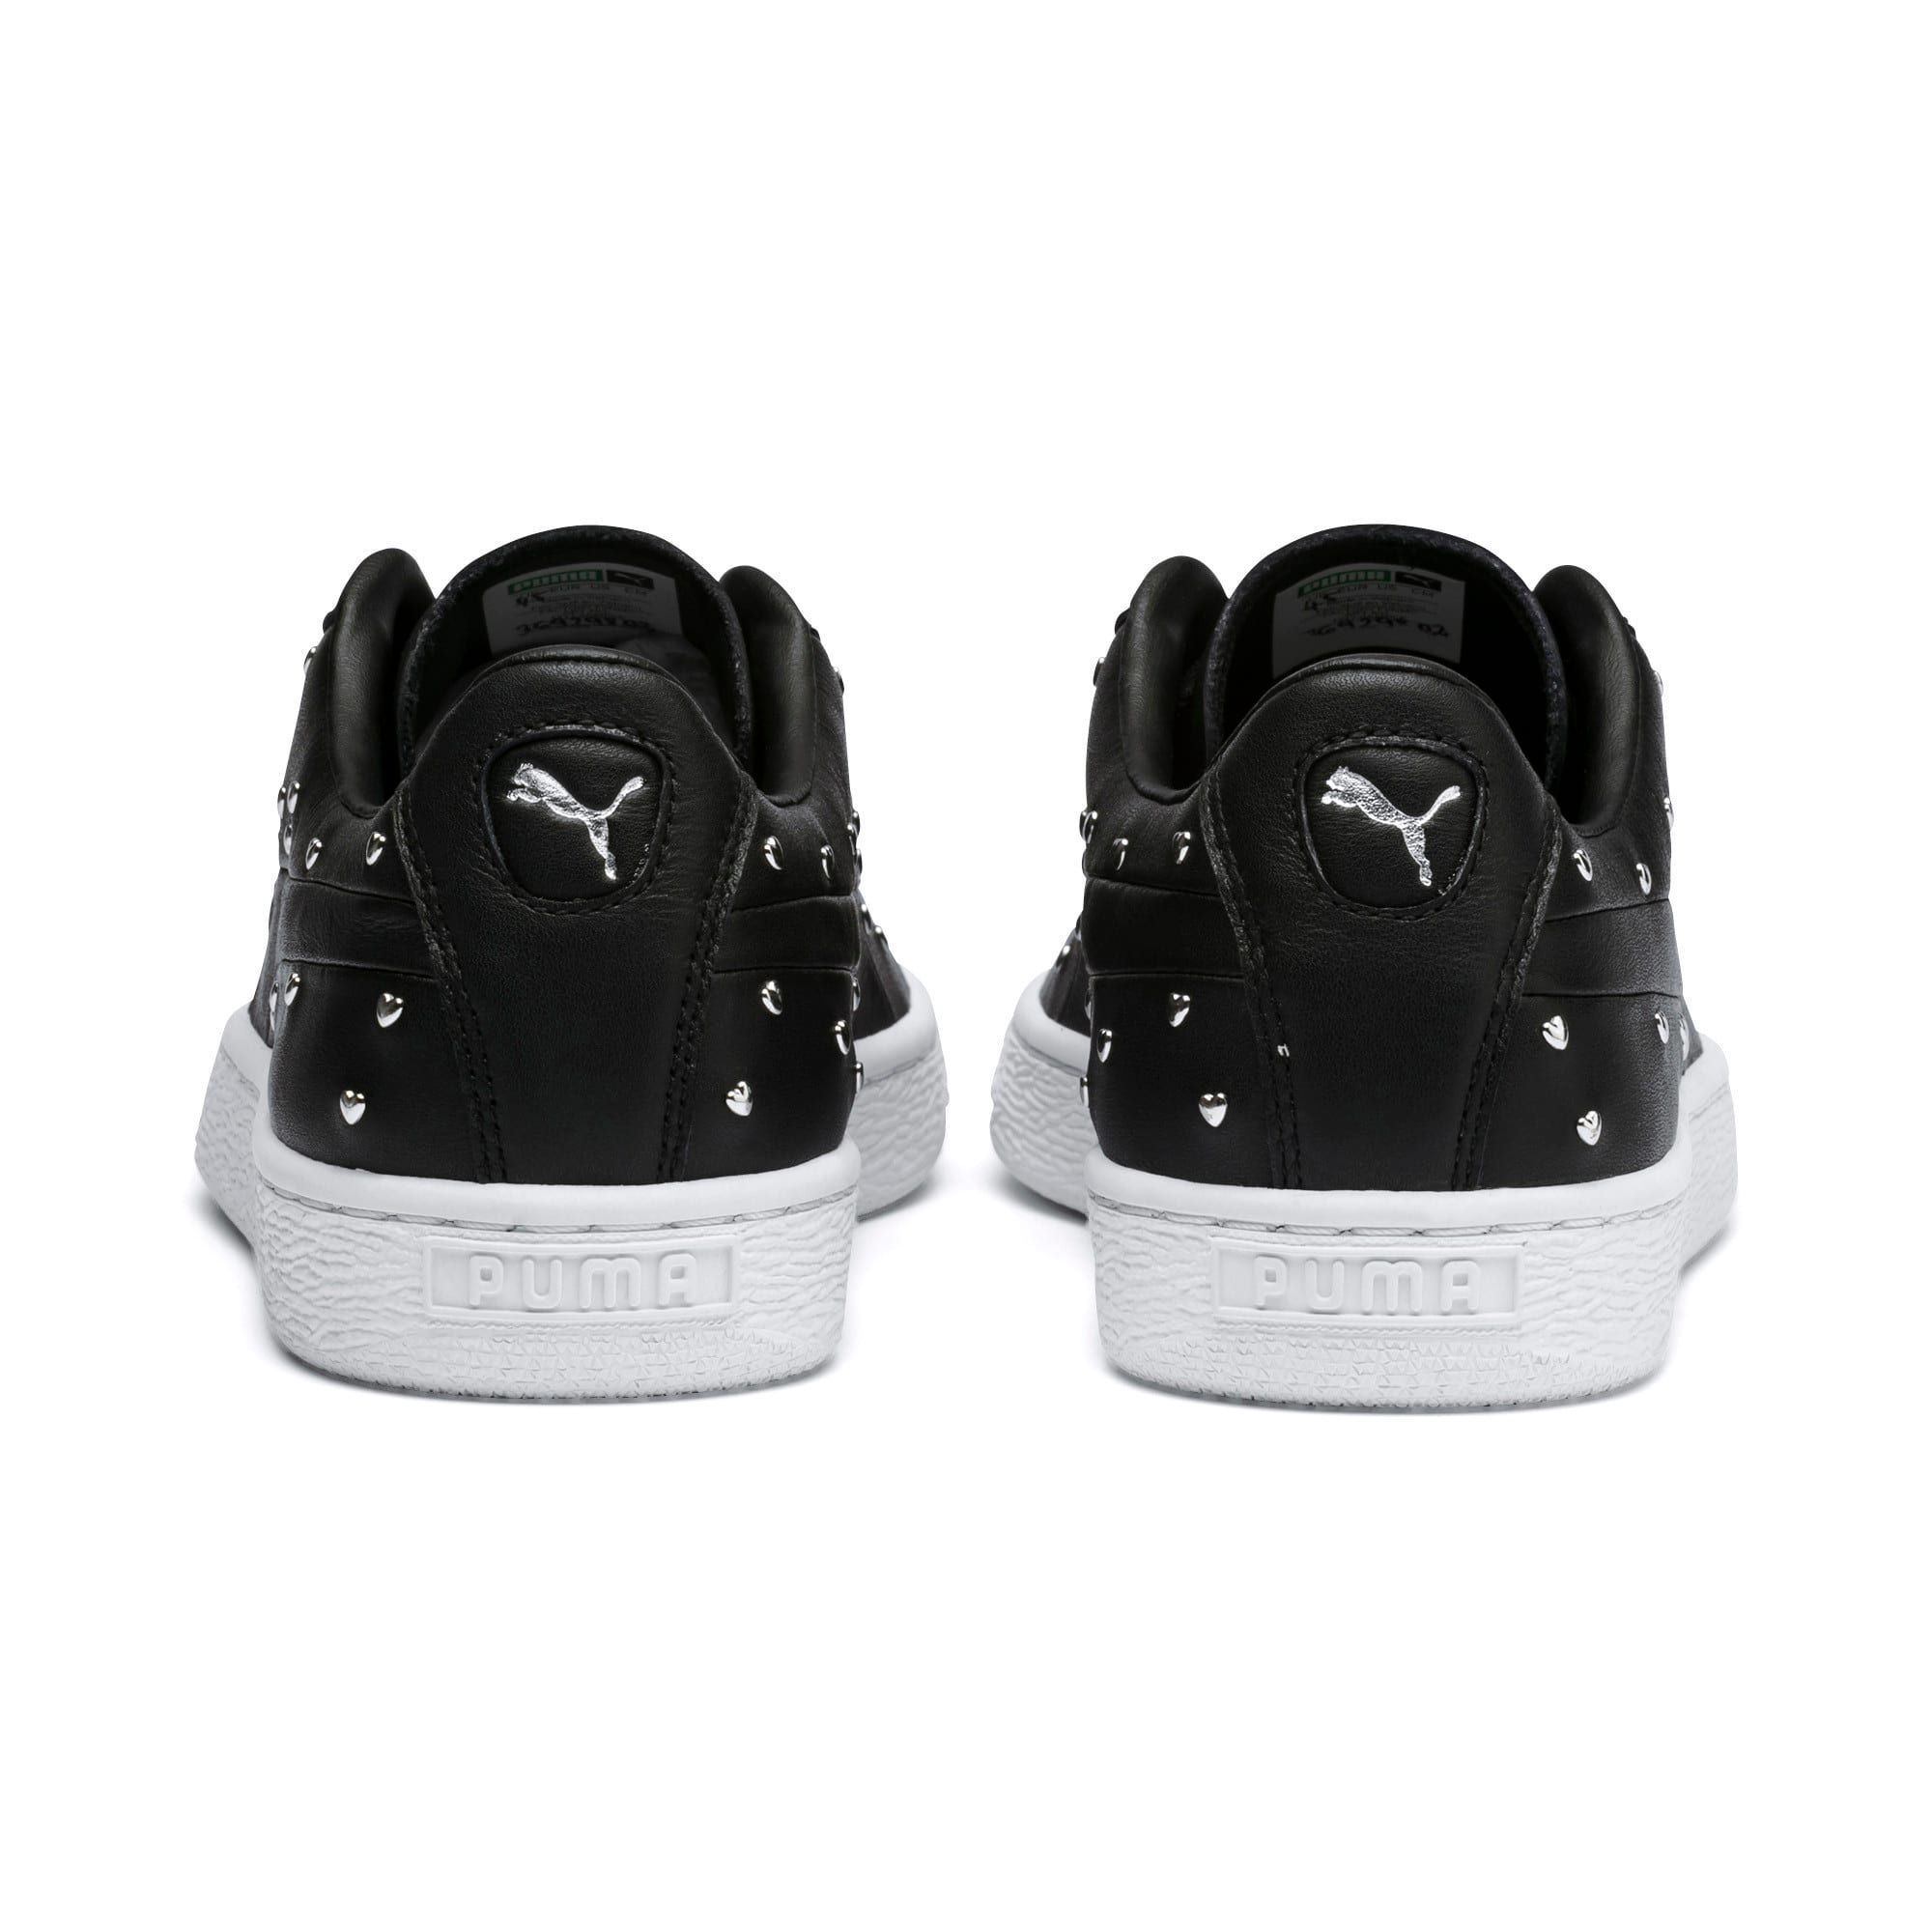 Sneakers Basket Studs donna